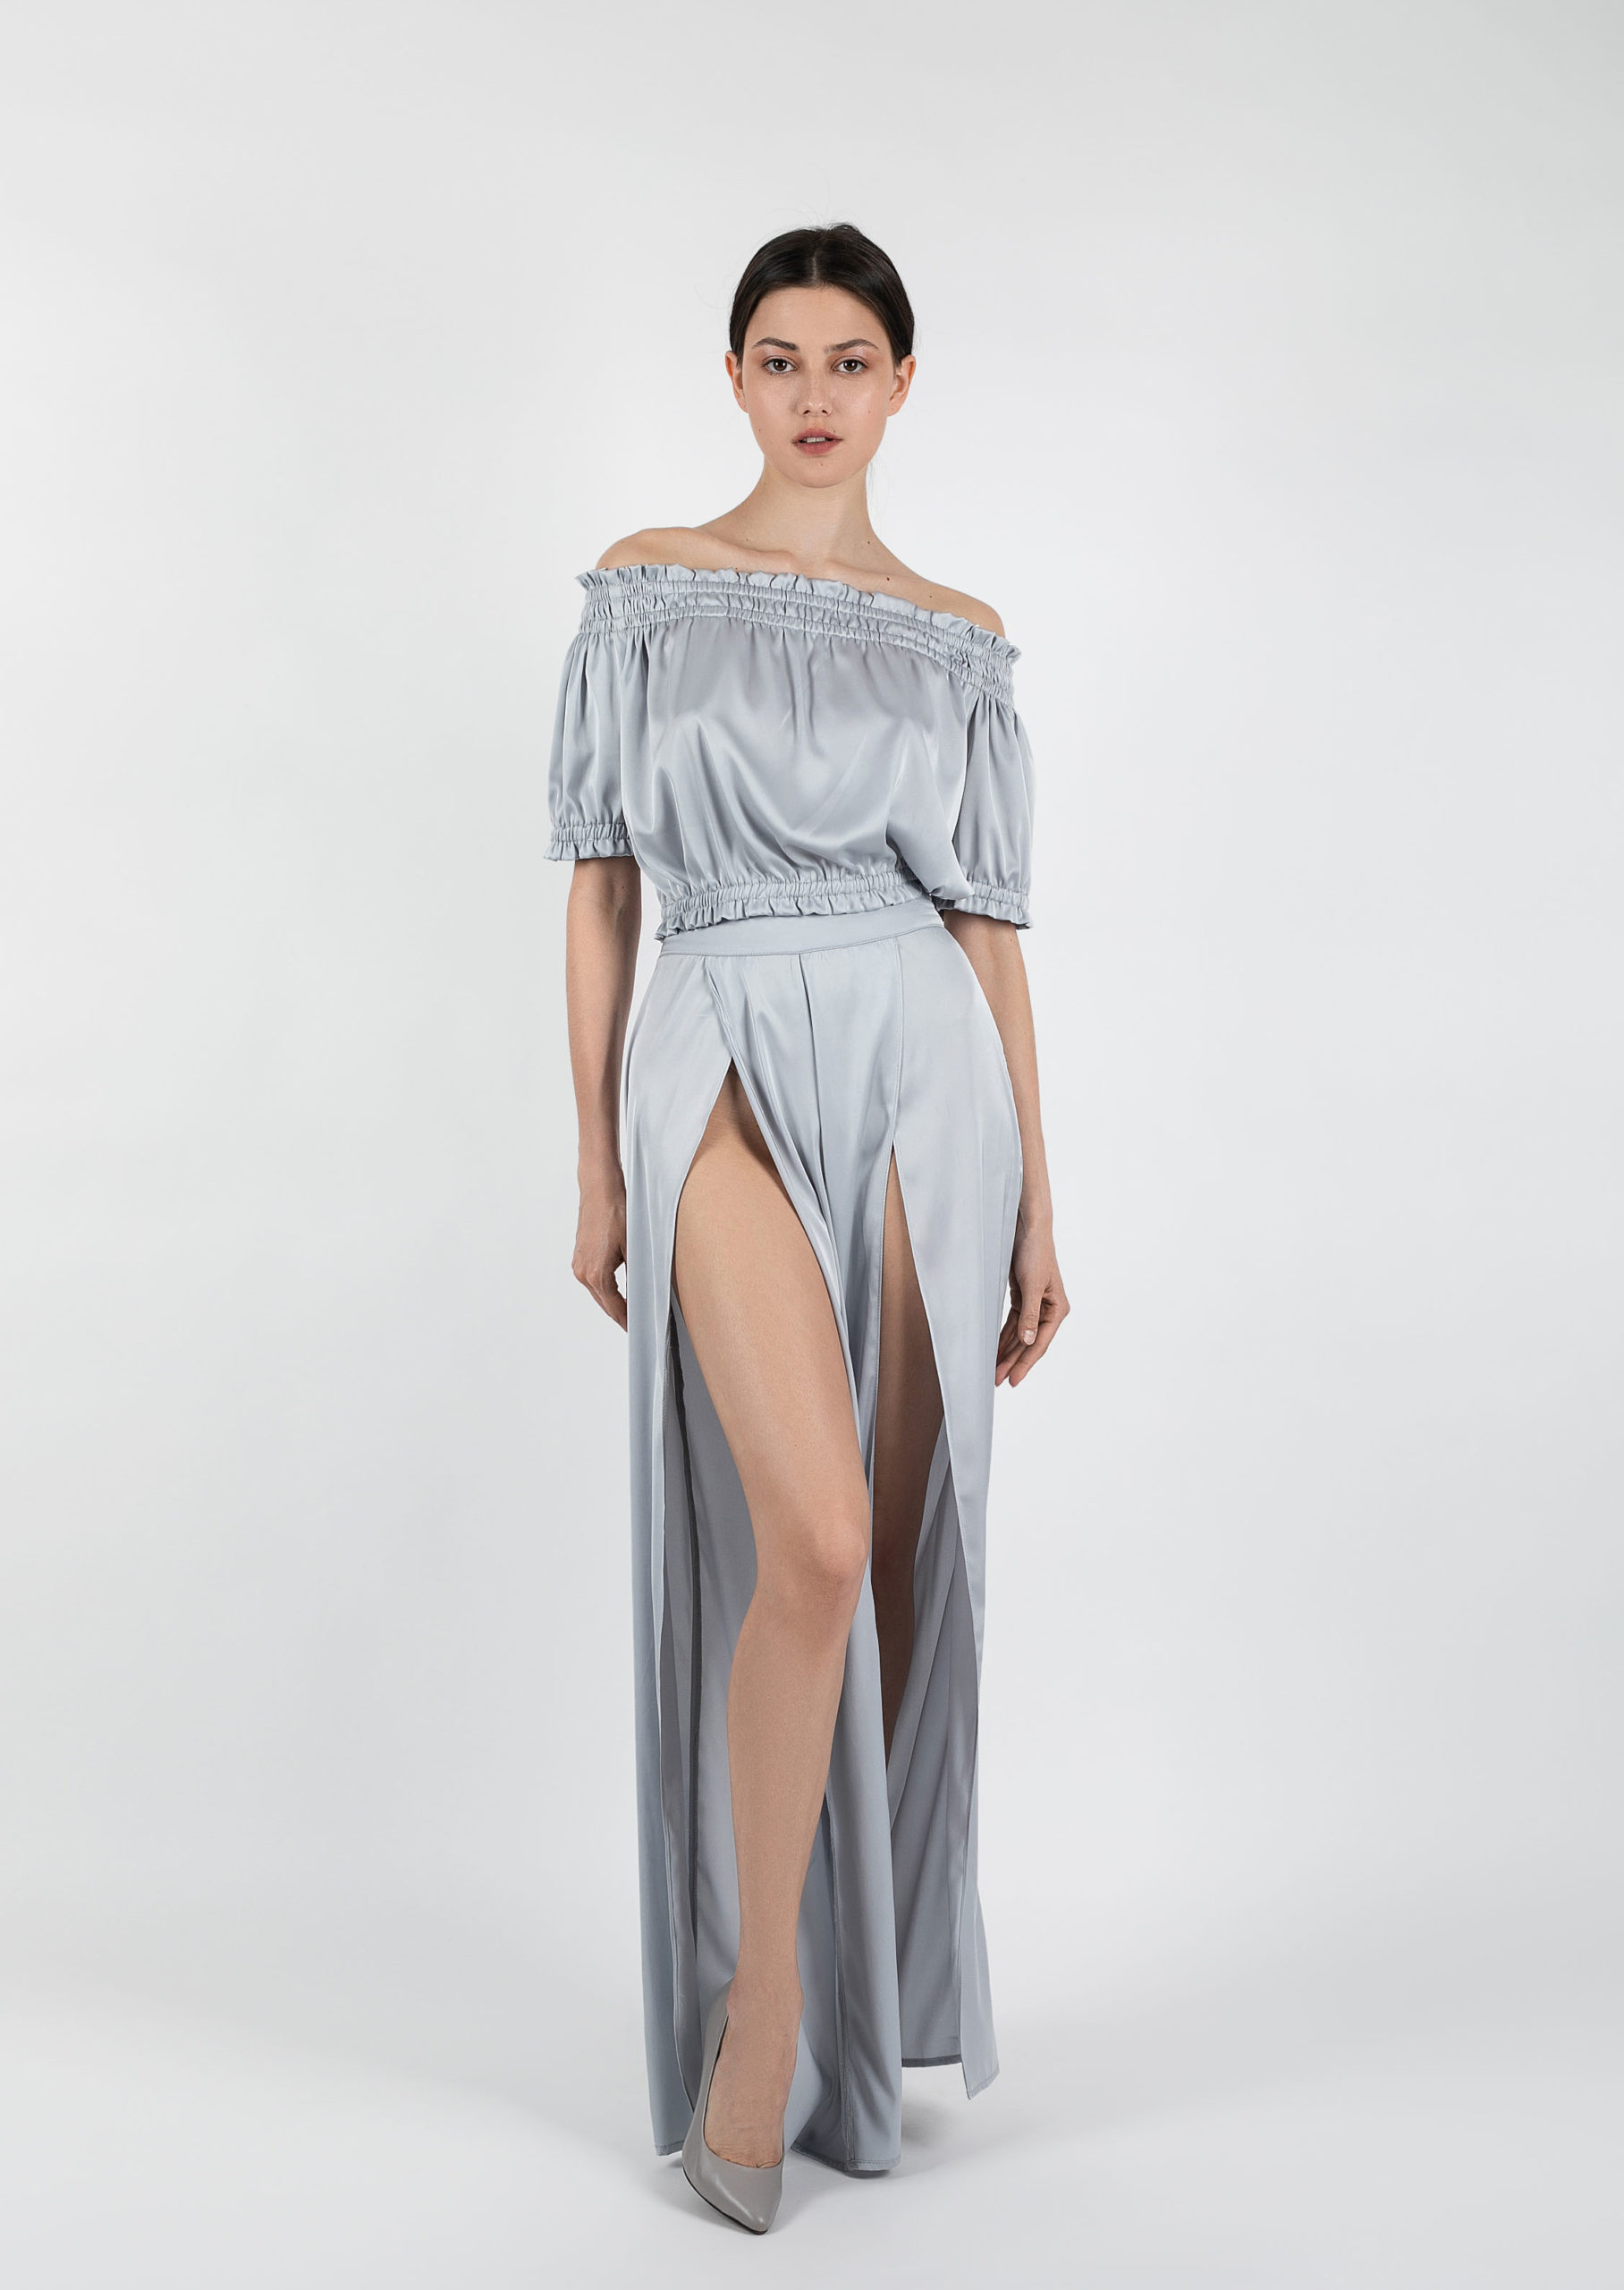 Iced coffee set / silver satin elegant evening set / grey sexy eveningwear with pants with deep slits / open off-the-shoulder evening wear